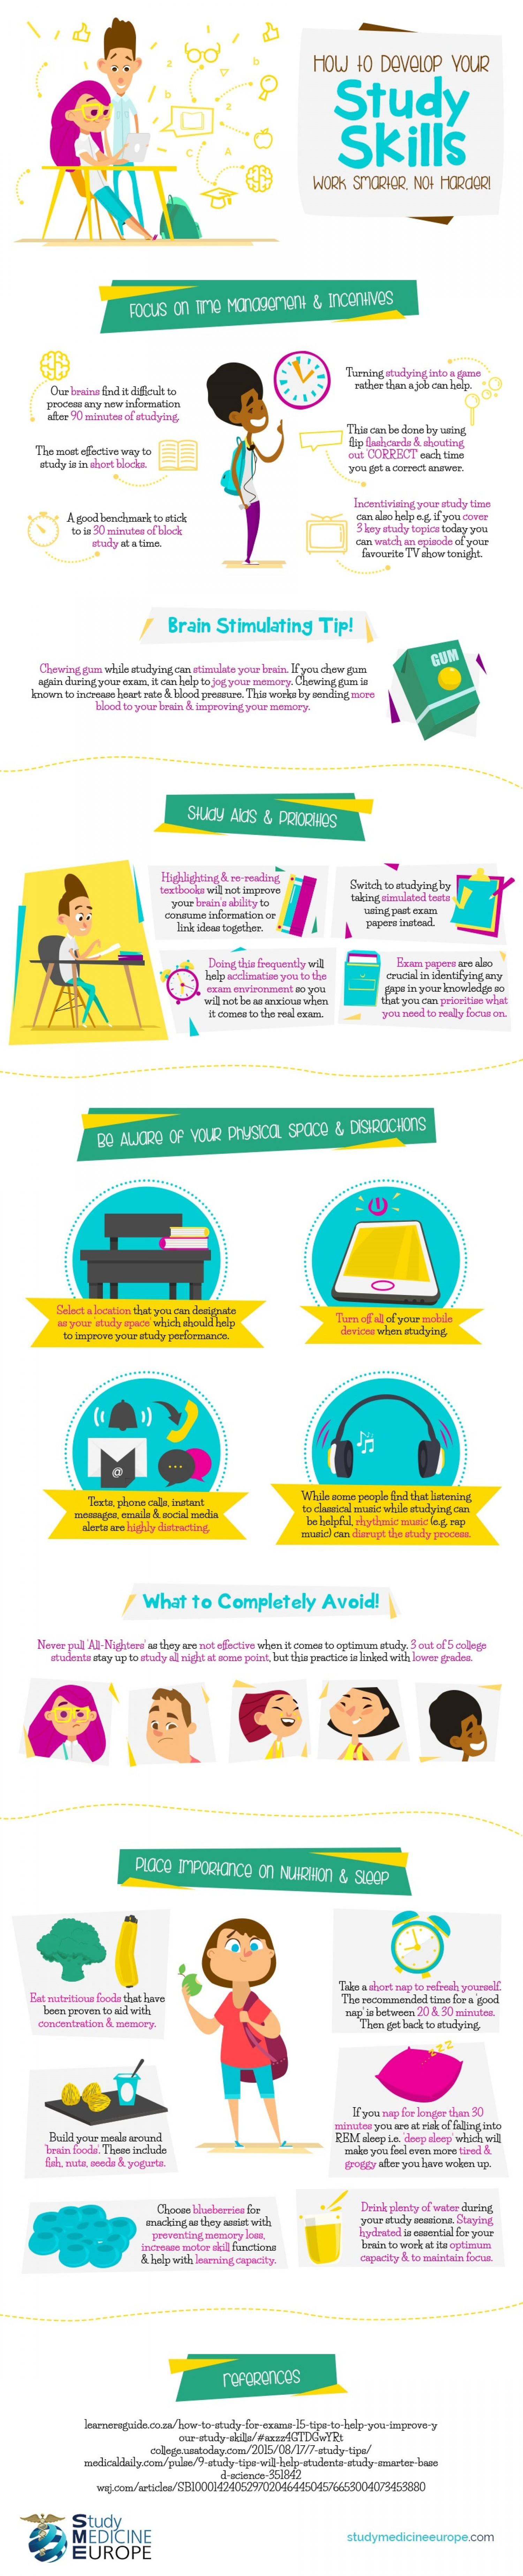 How To Study Smartly With Fewer Efforts - Infographic